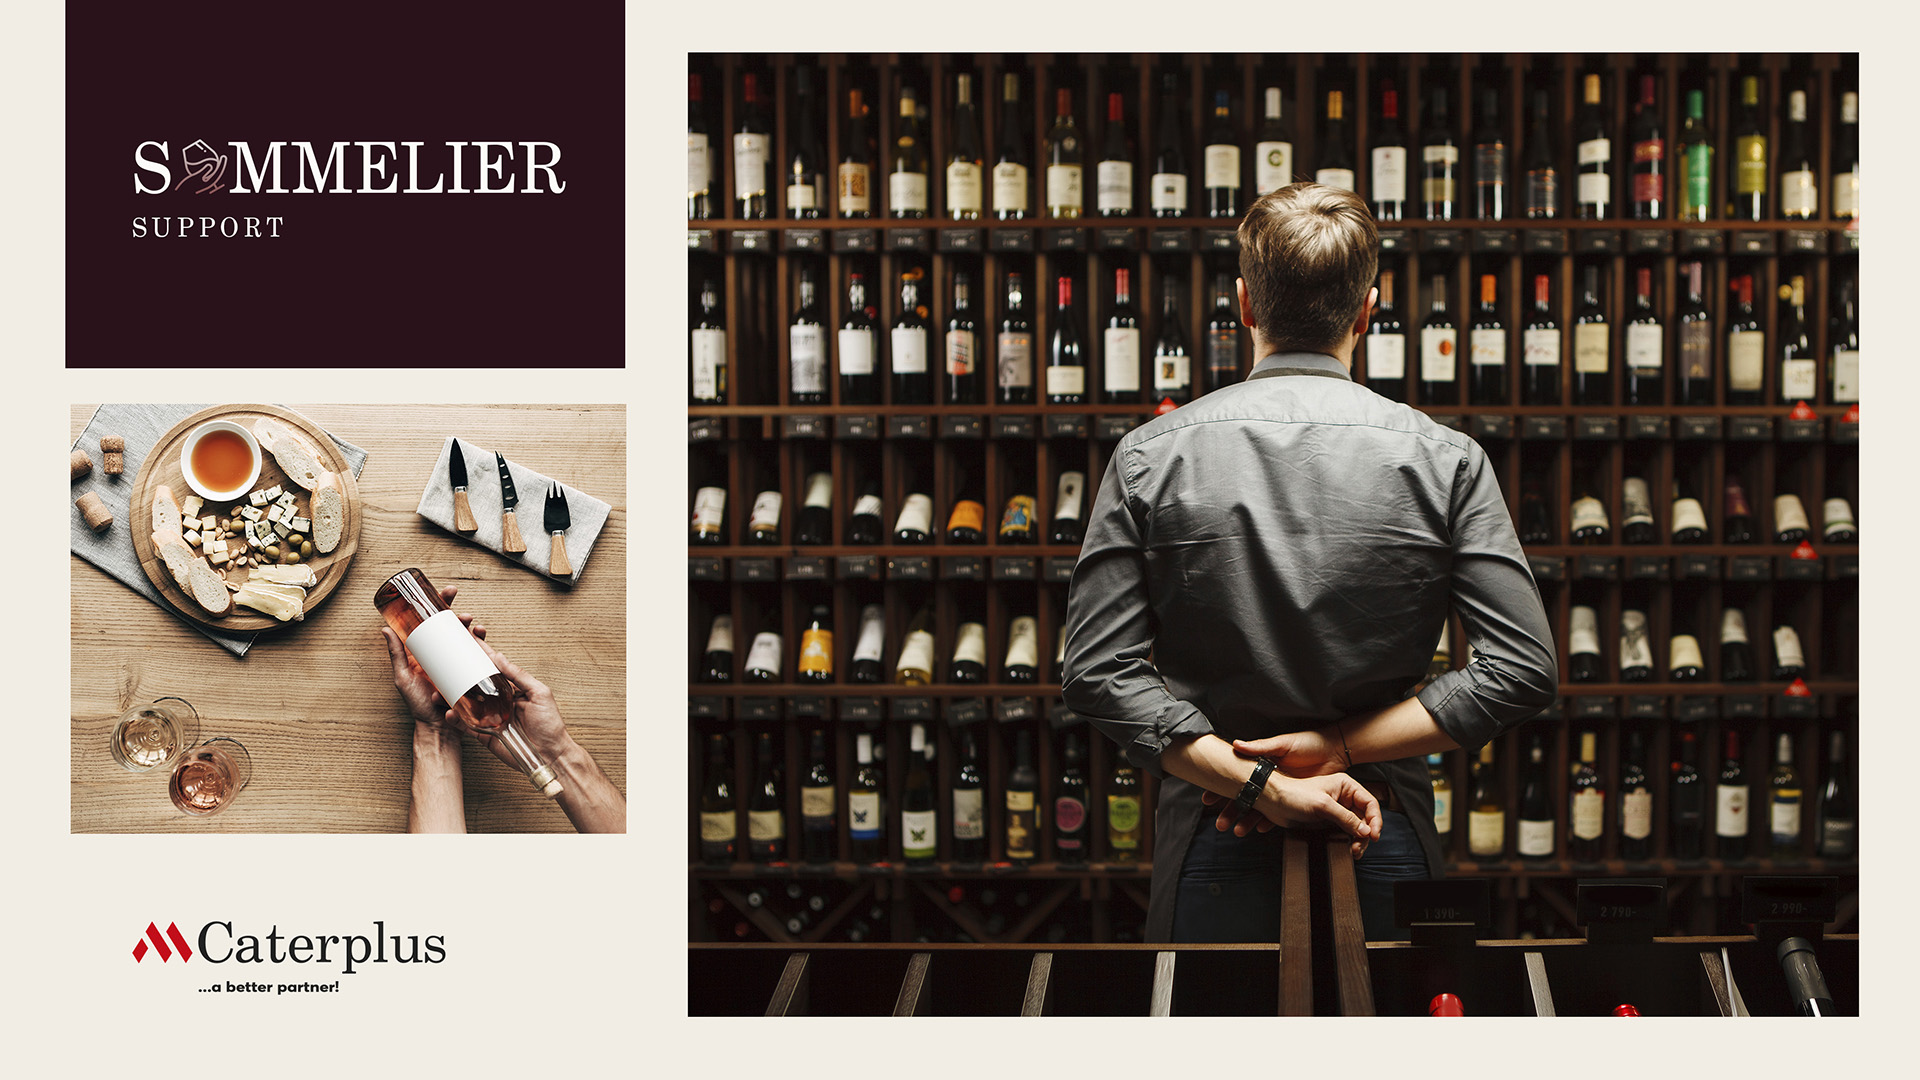 Sommelier Support από την Caterplus